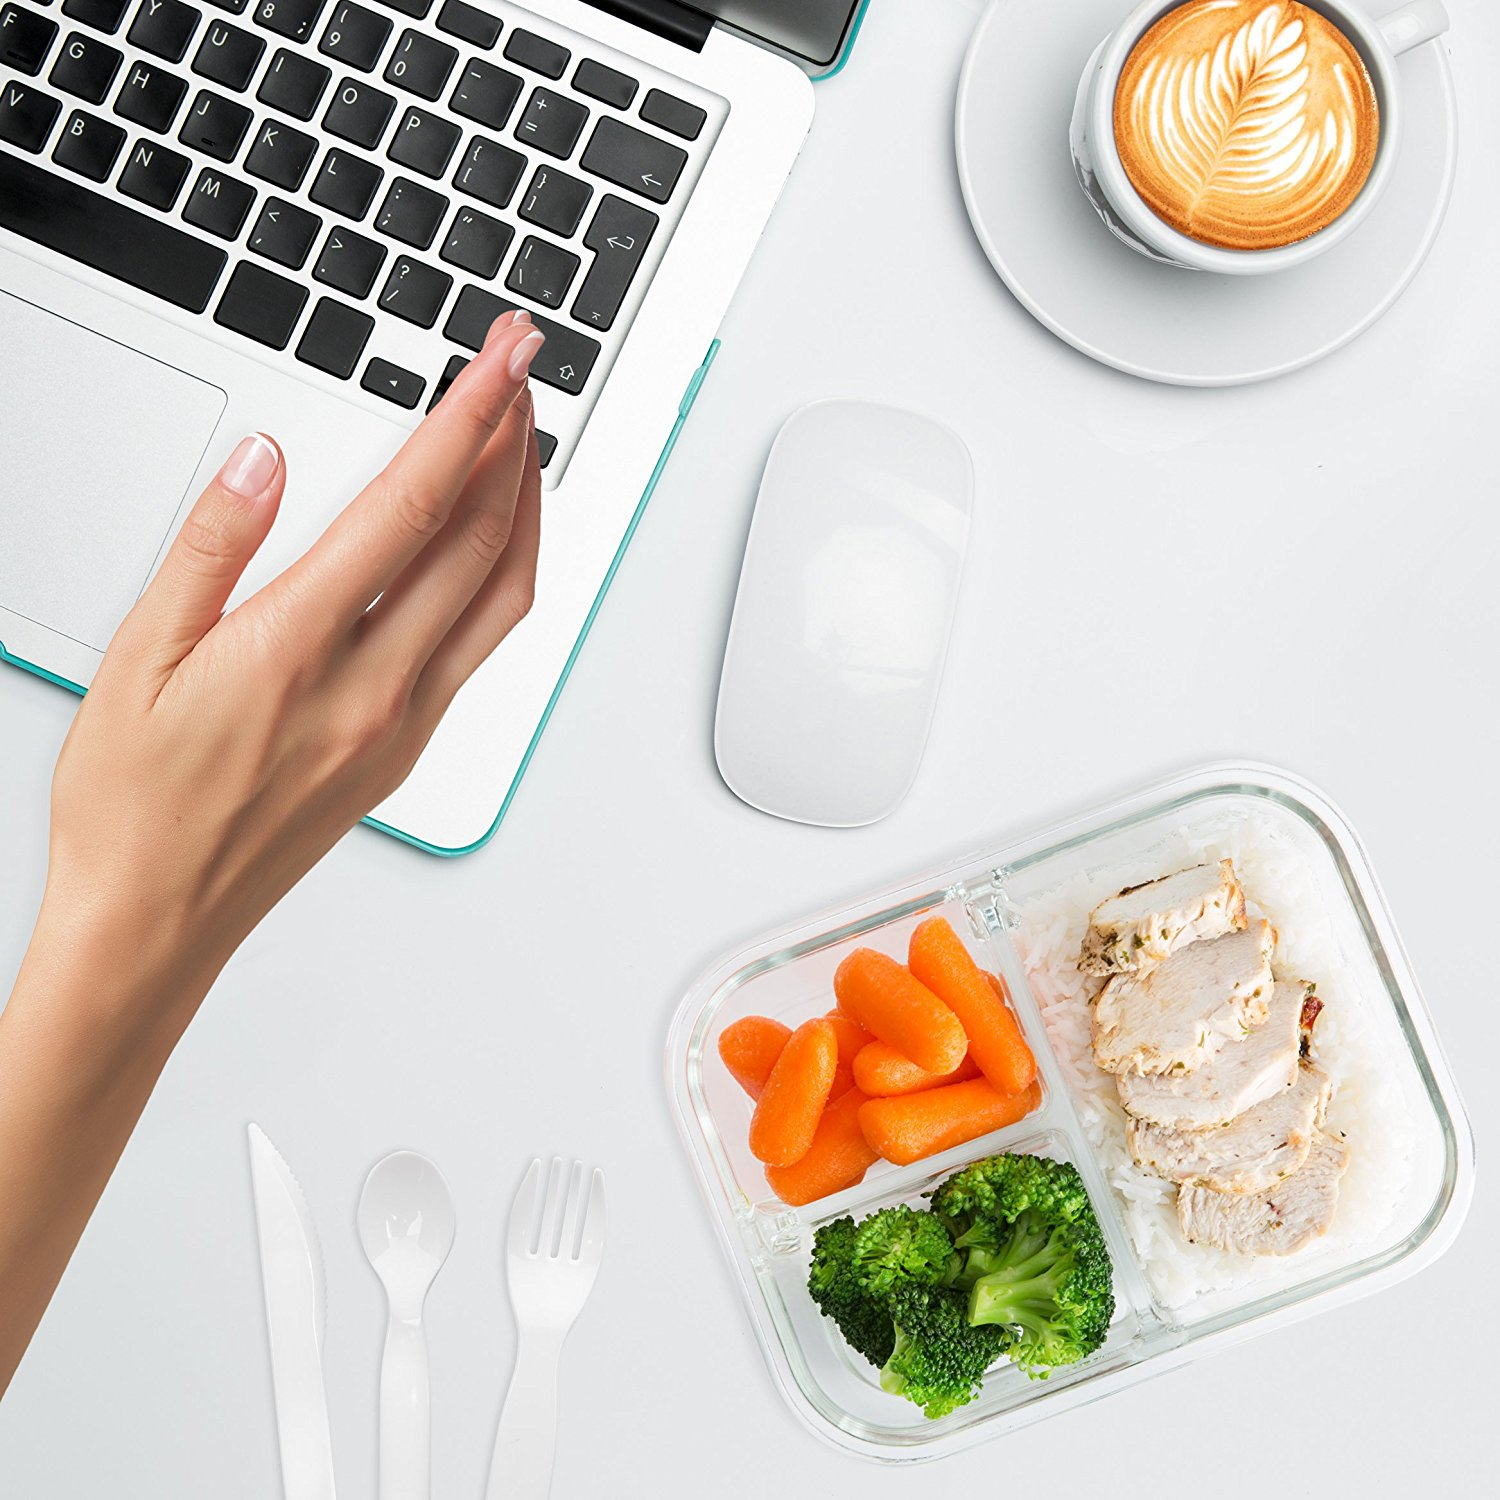 Discover the power of healthy meal planning to stick to your health goals and budget. Here are my favorite tips, plus a free meal planning menu printable! | Slashed Beauty